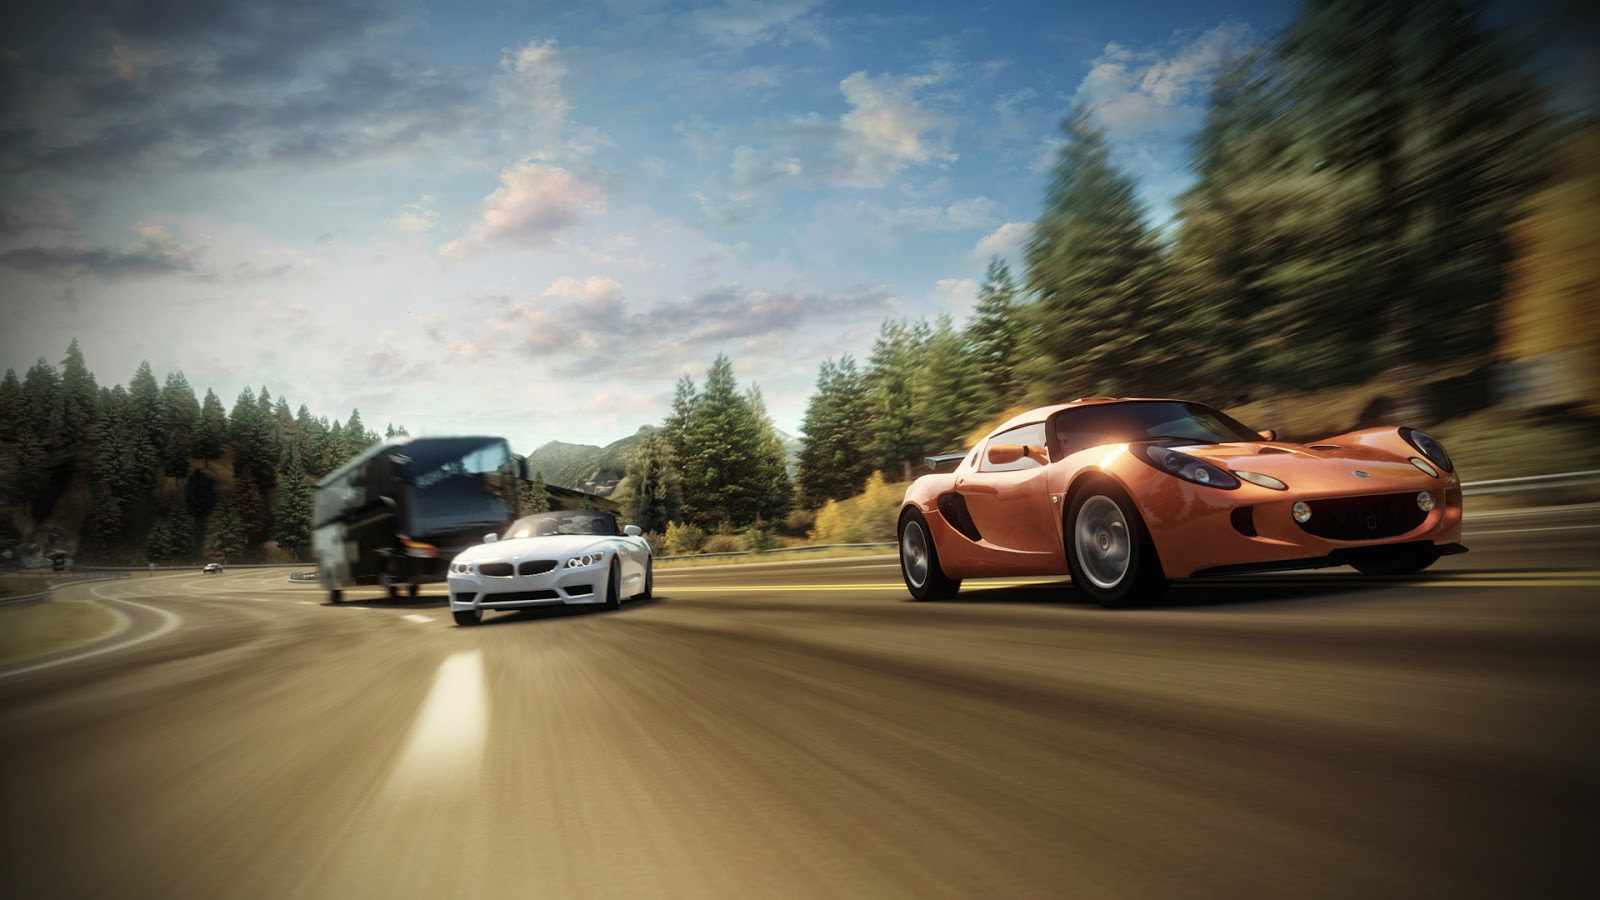 Forza Horizon HD & Widescreen Wallpaper 0.622751829194401